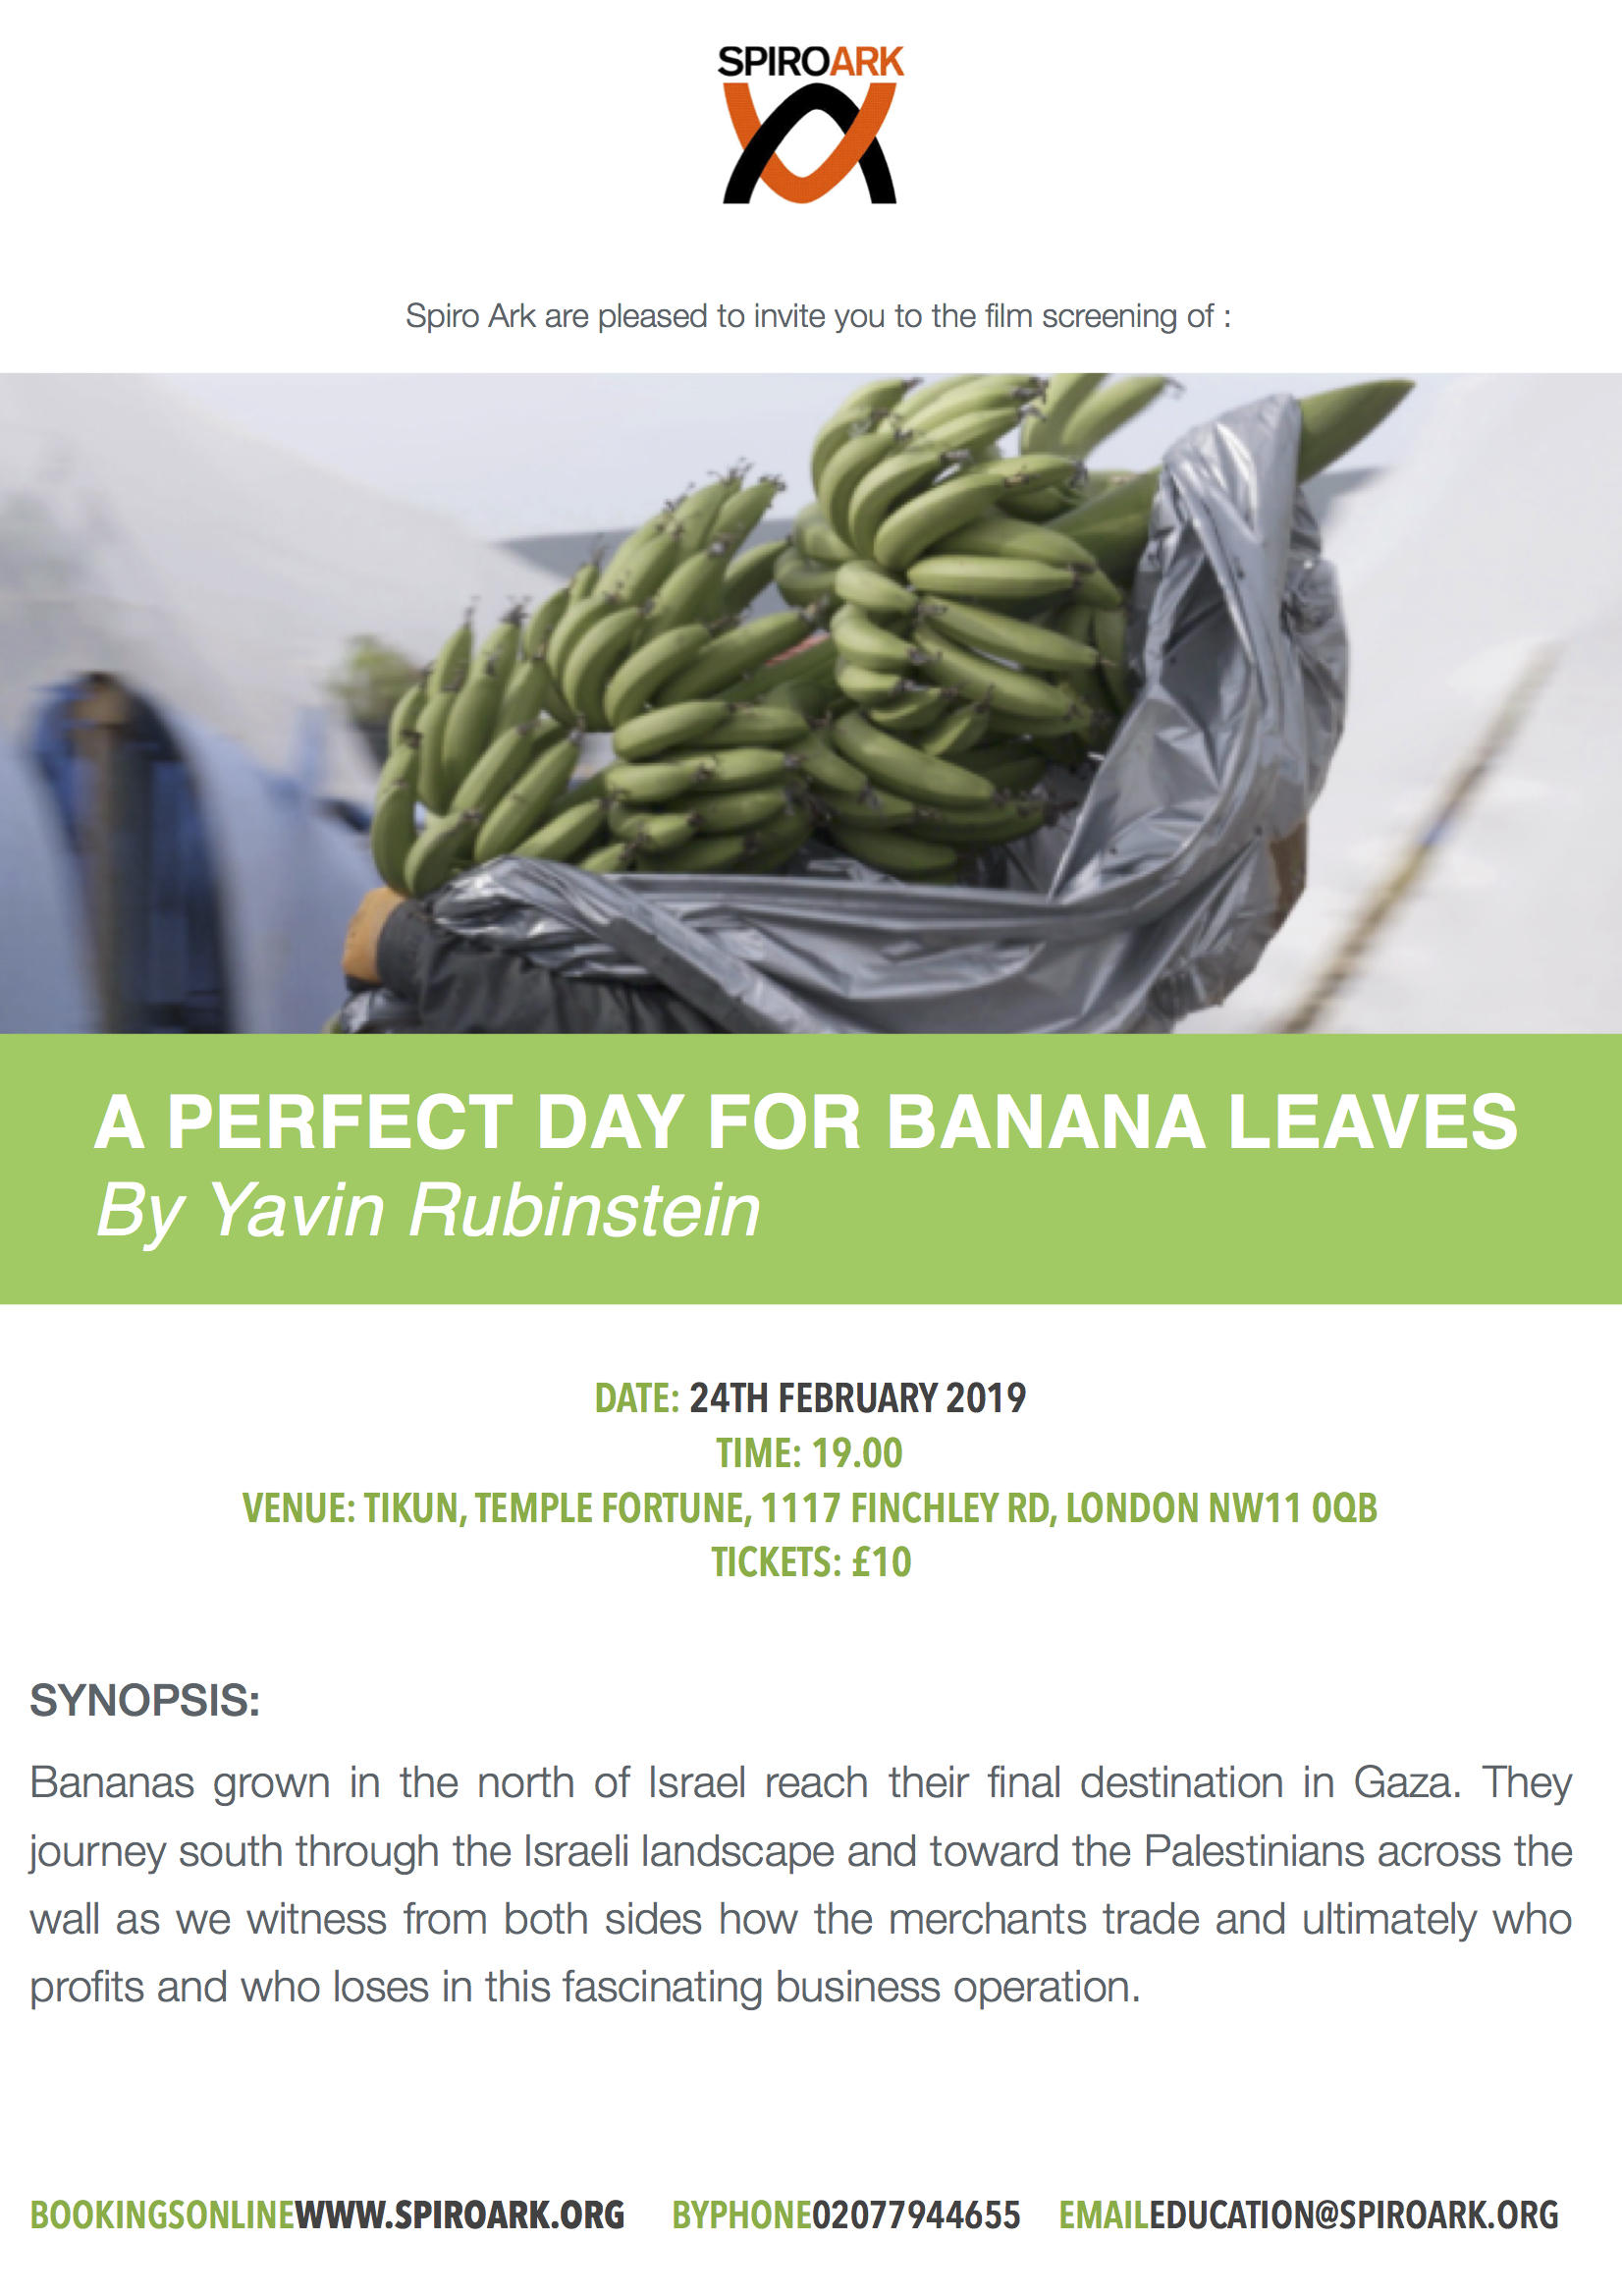 A Perfect Day for Banana Leaves